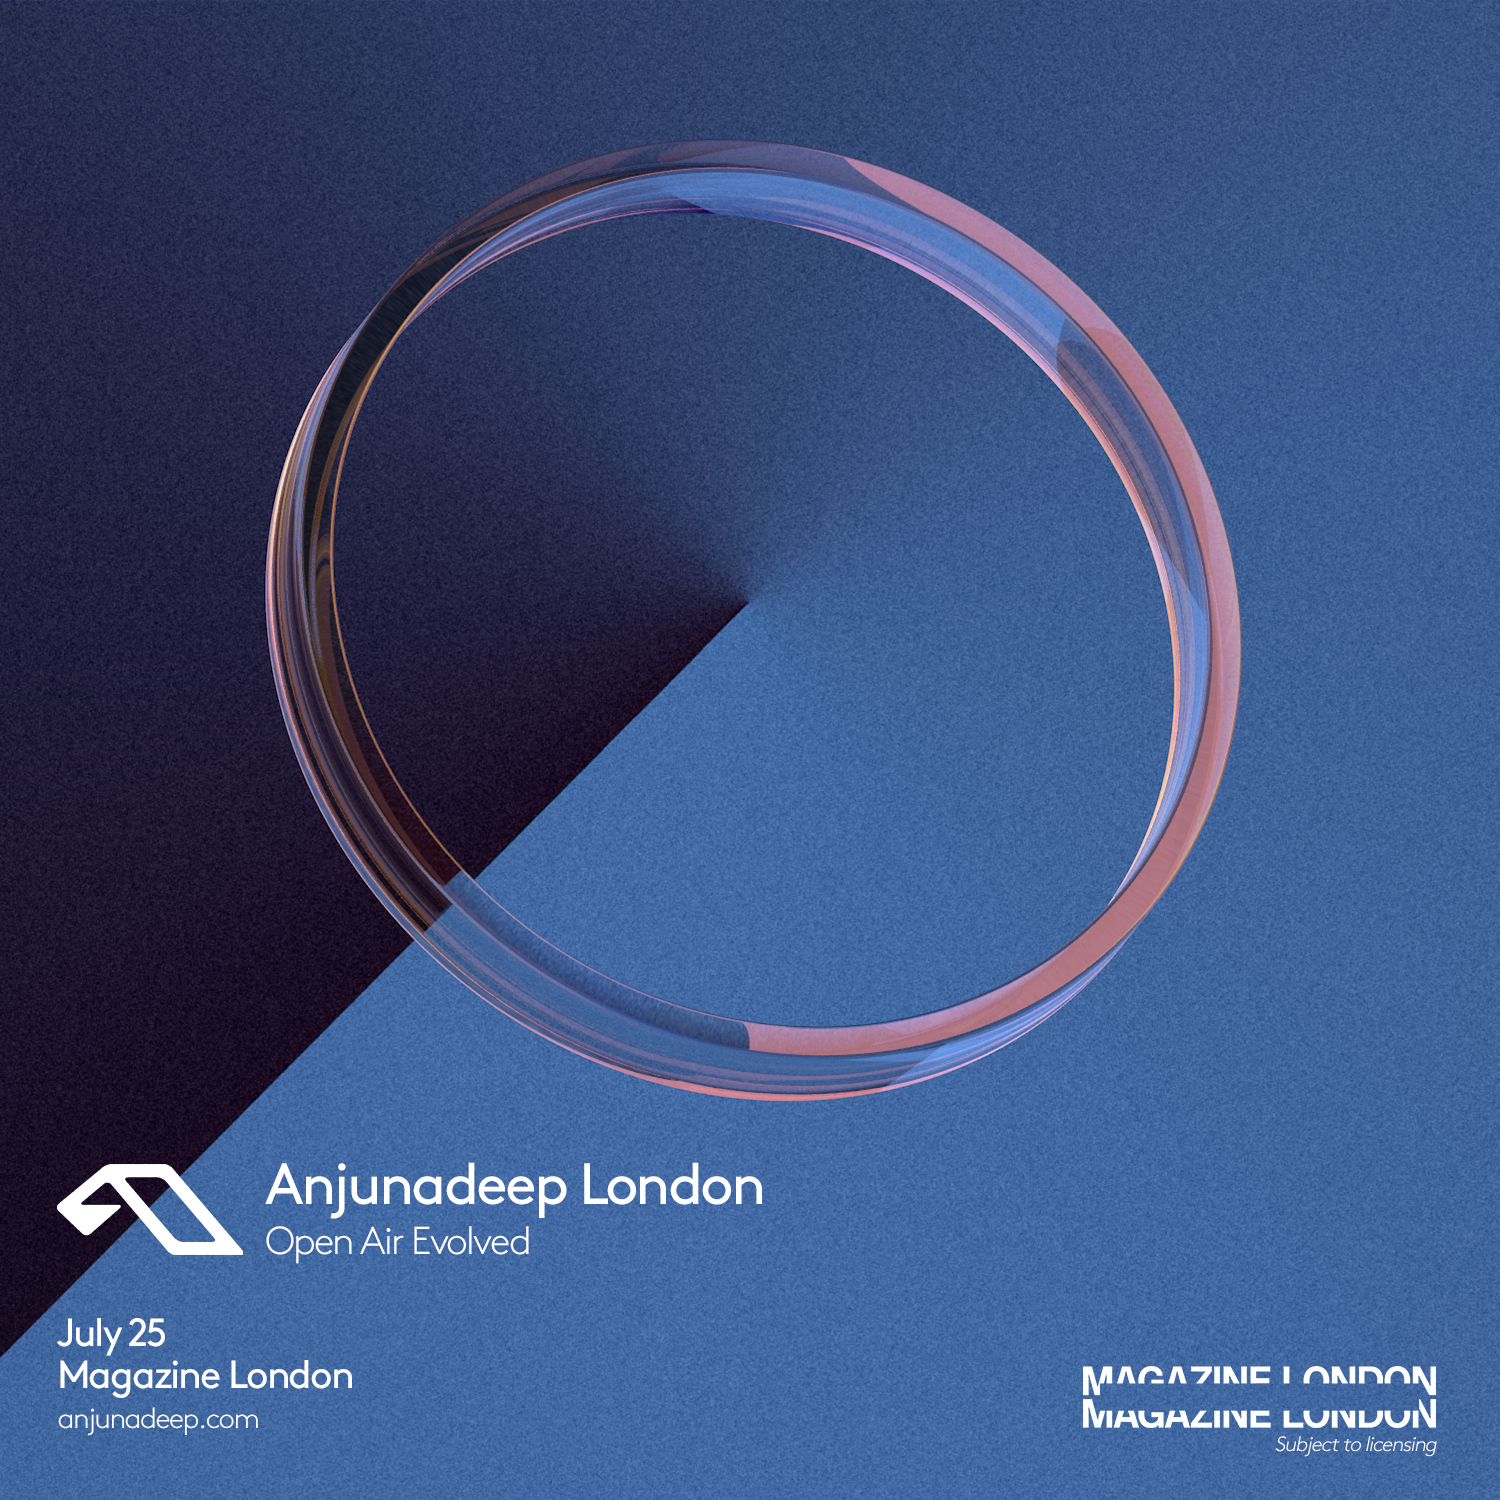 Anjunadeep London: Open Air Evolved